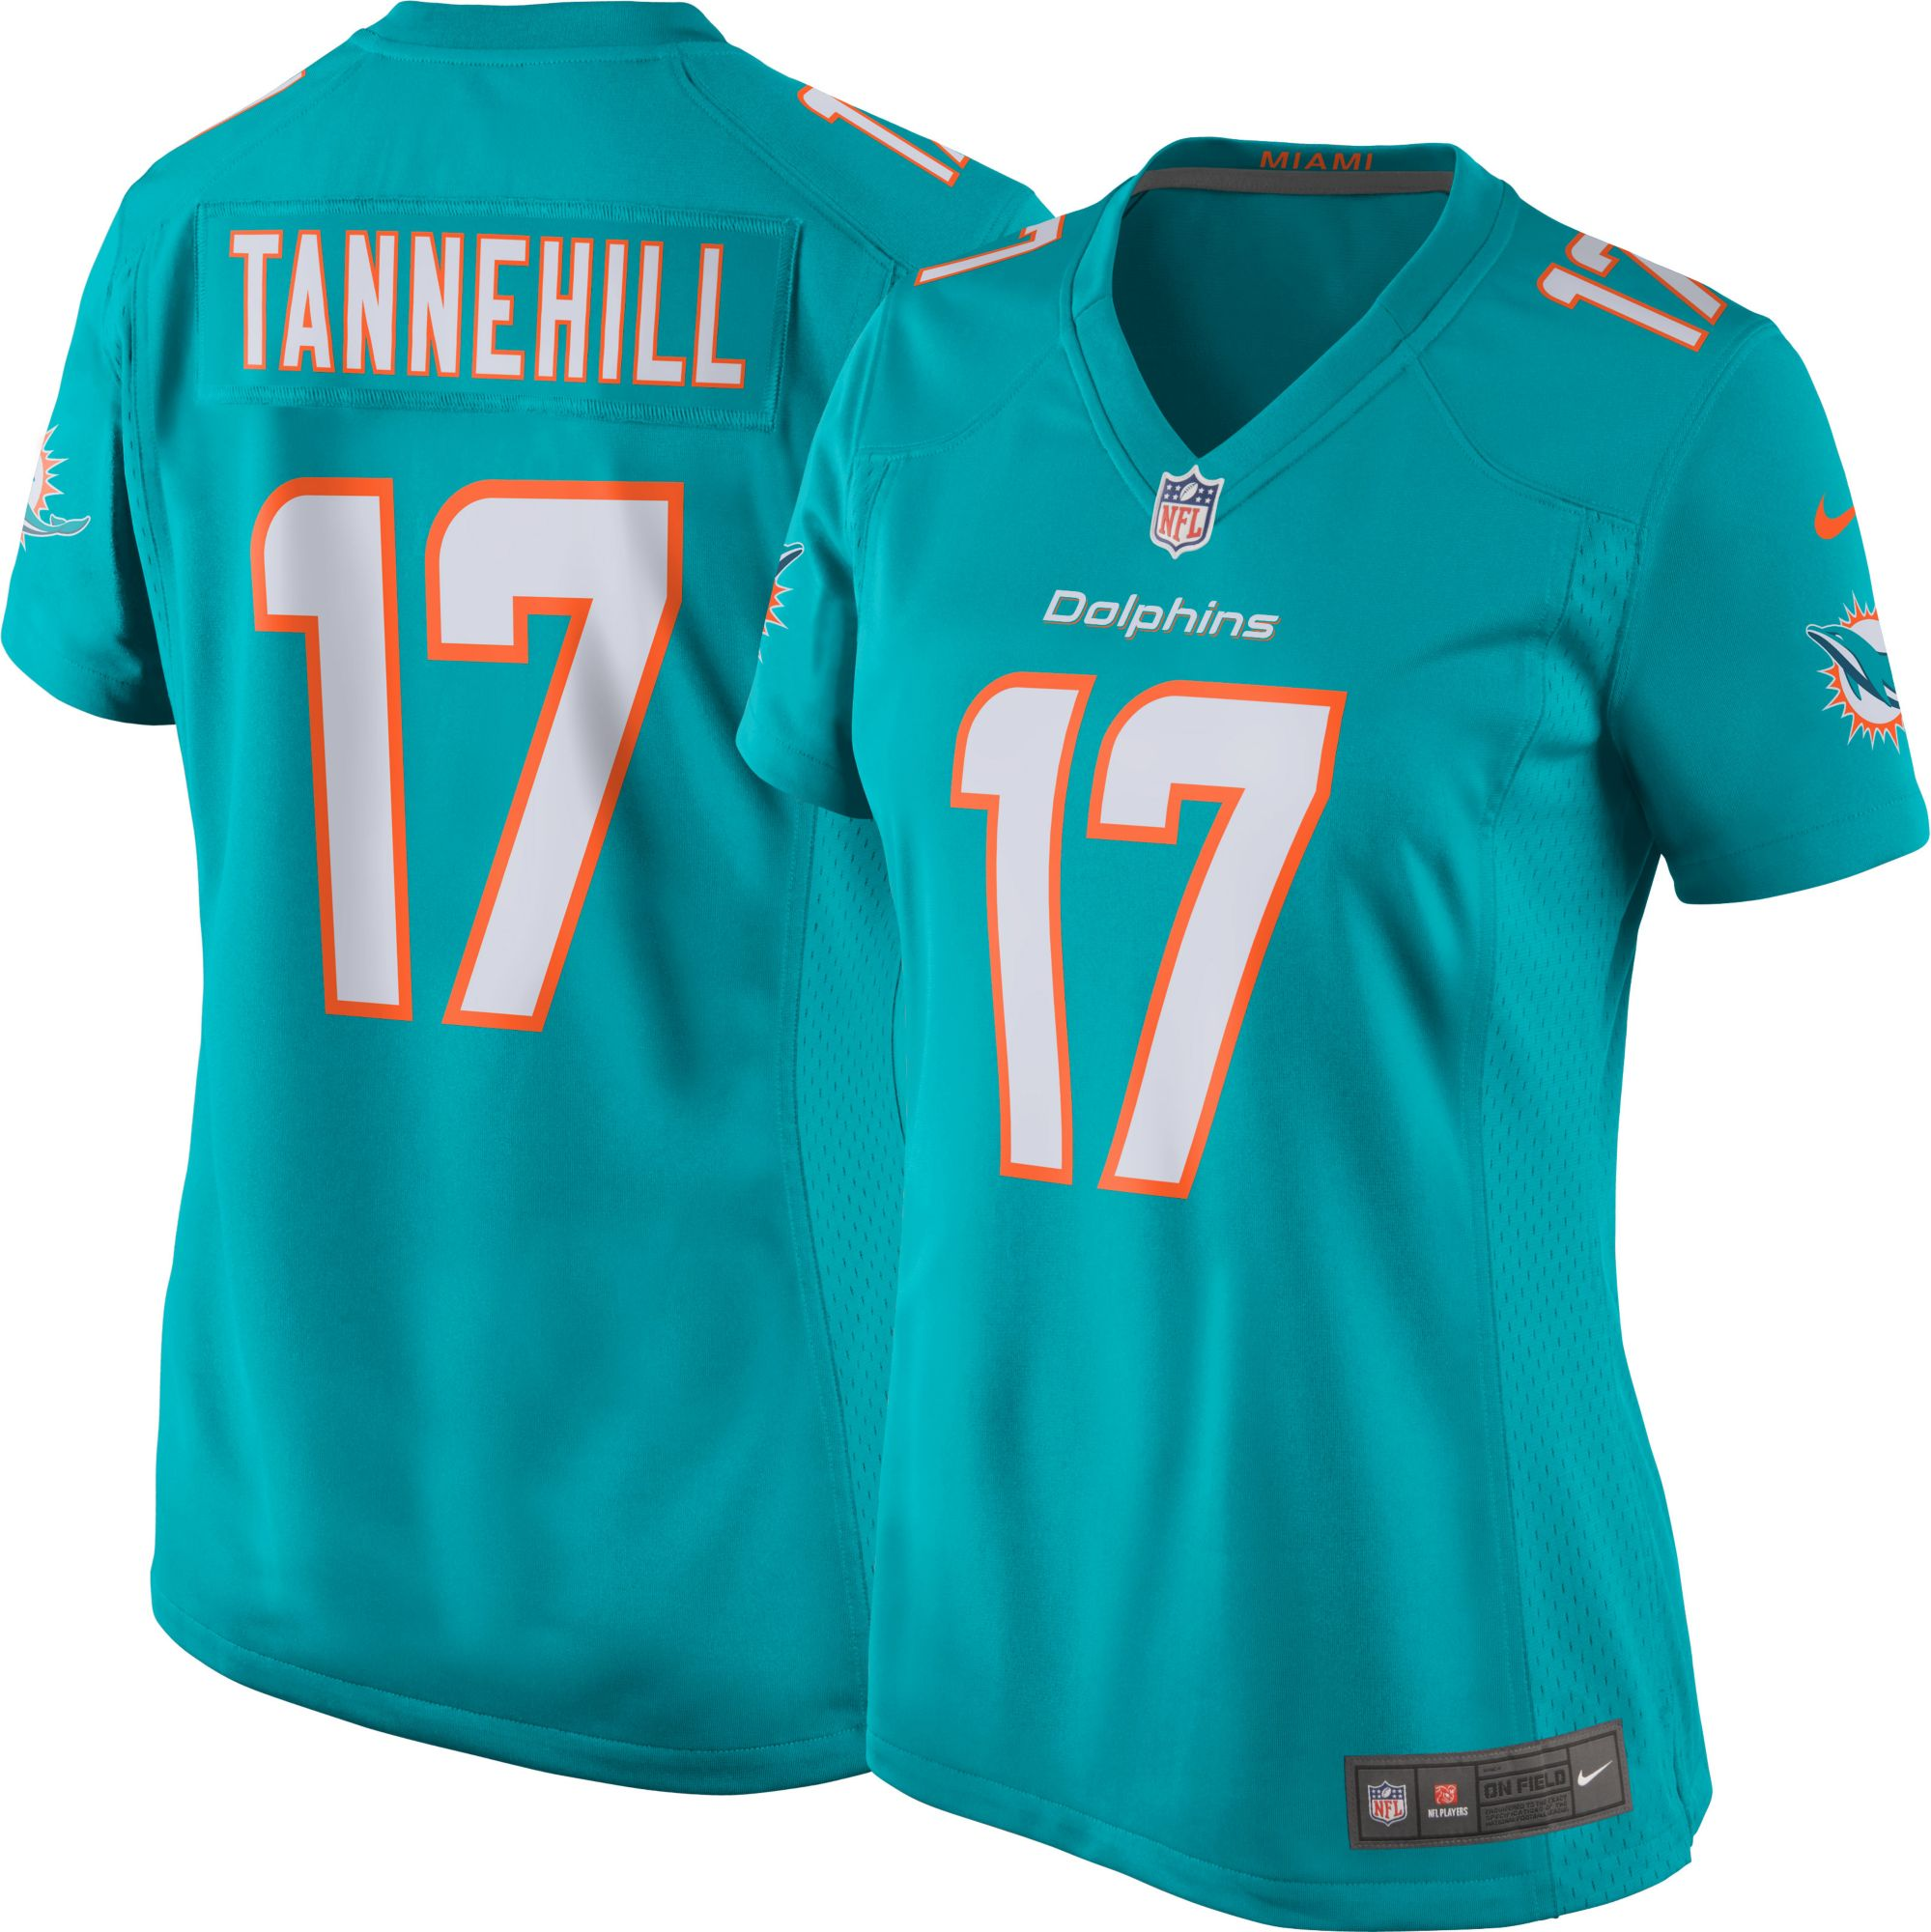 dolphins tannehill jersey